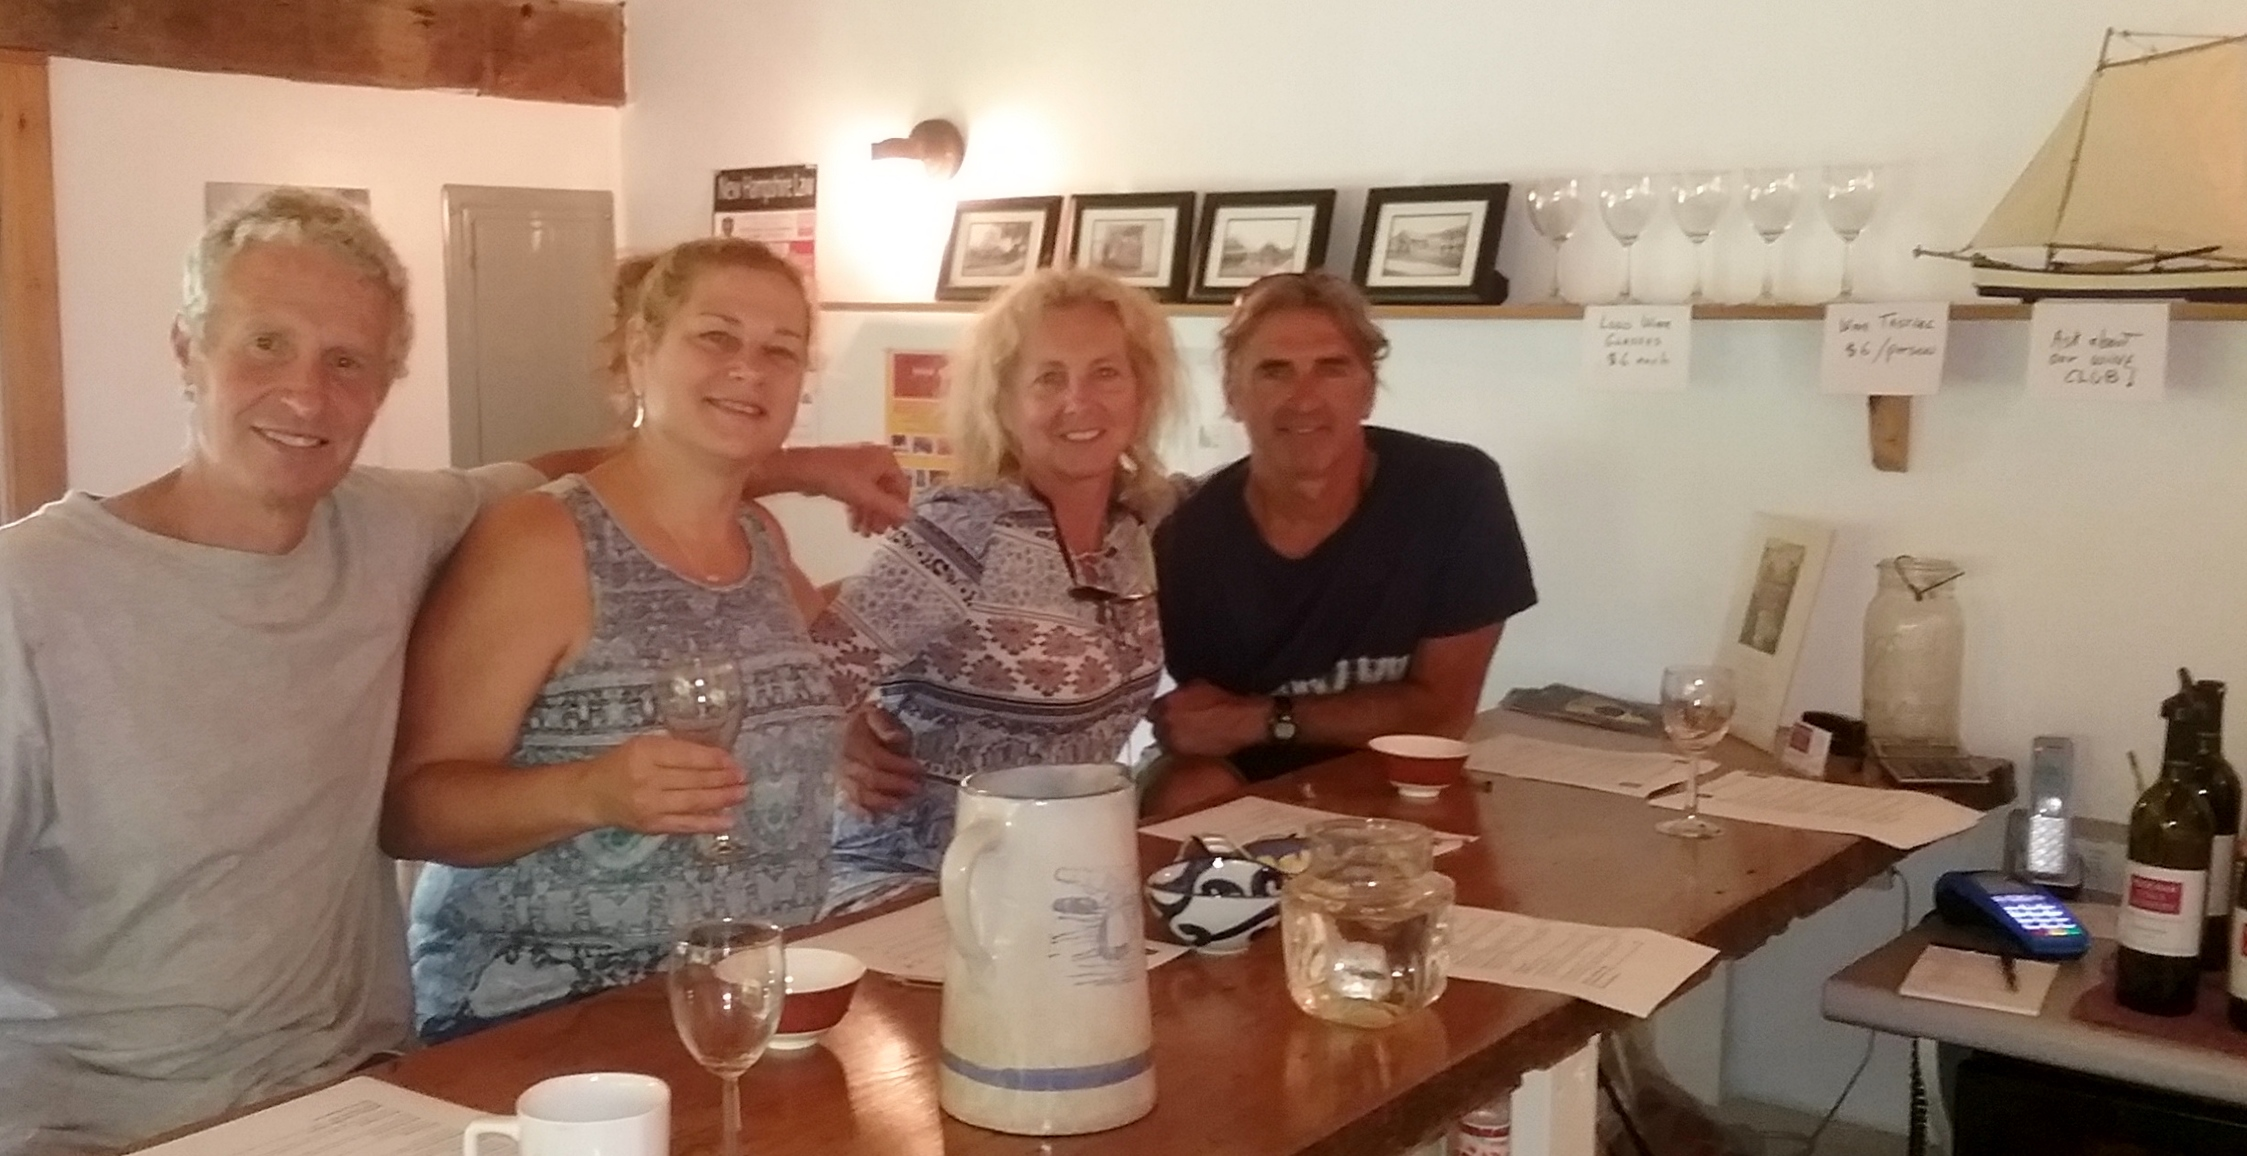 four people sit at a counter with wine glasses and smile at the camera